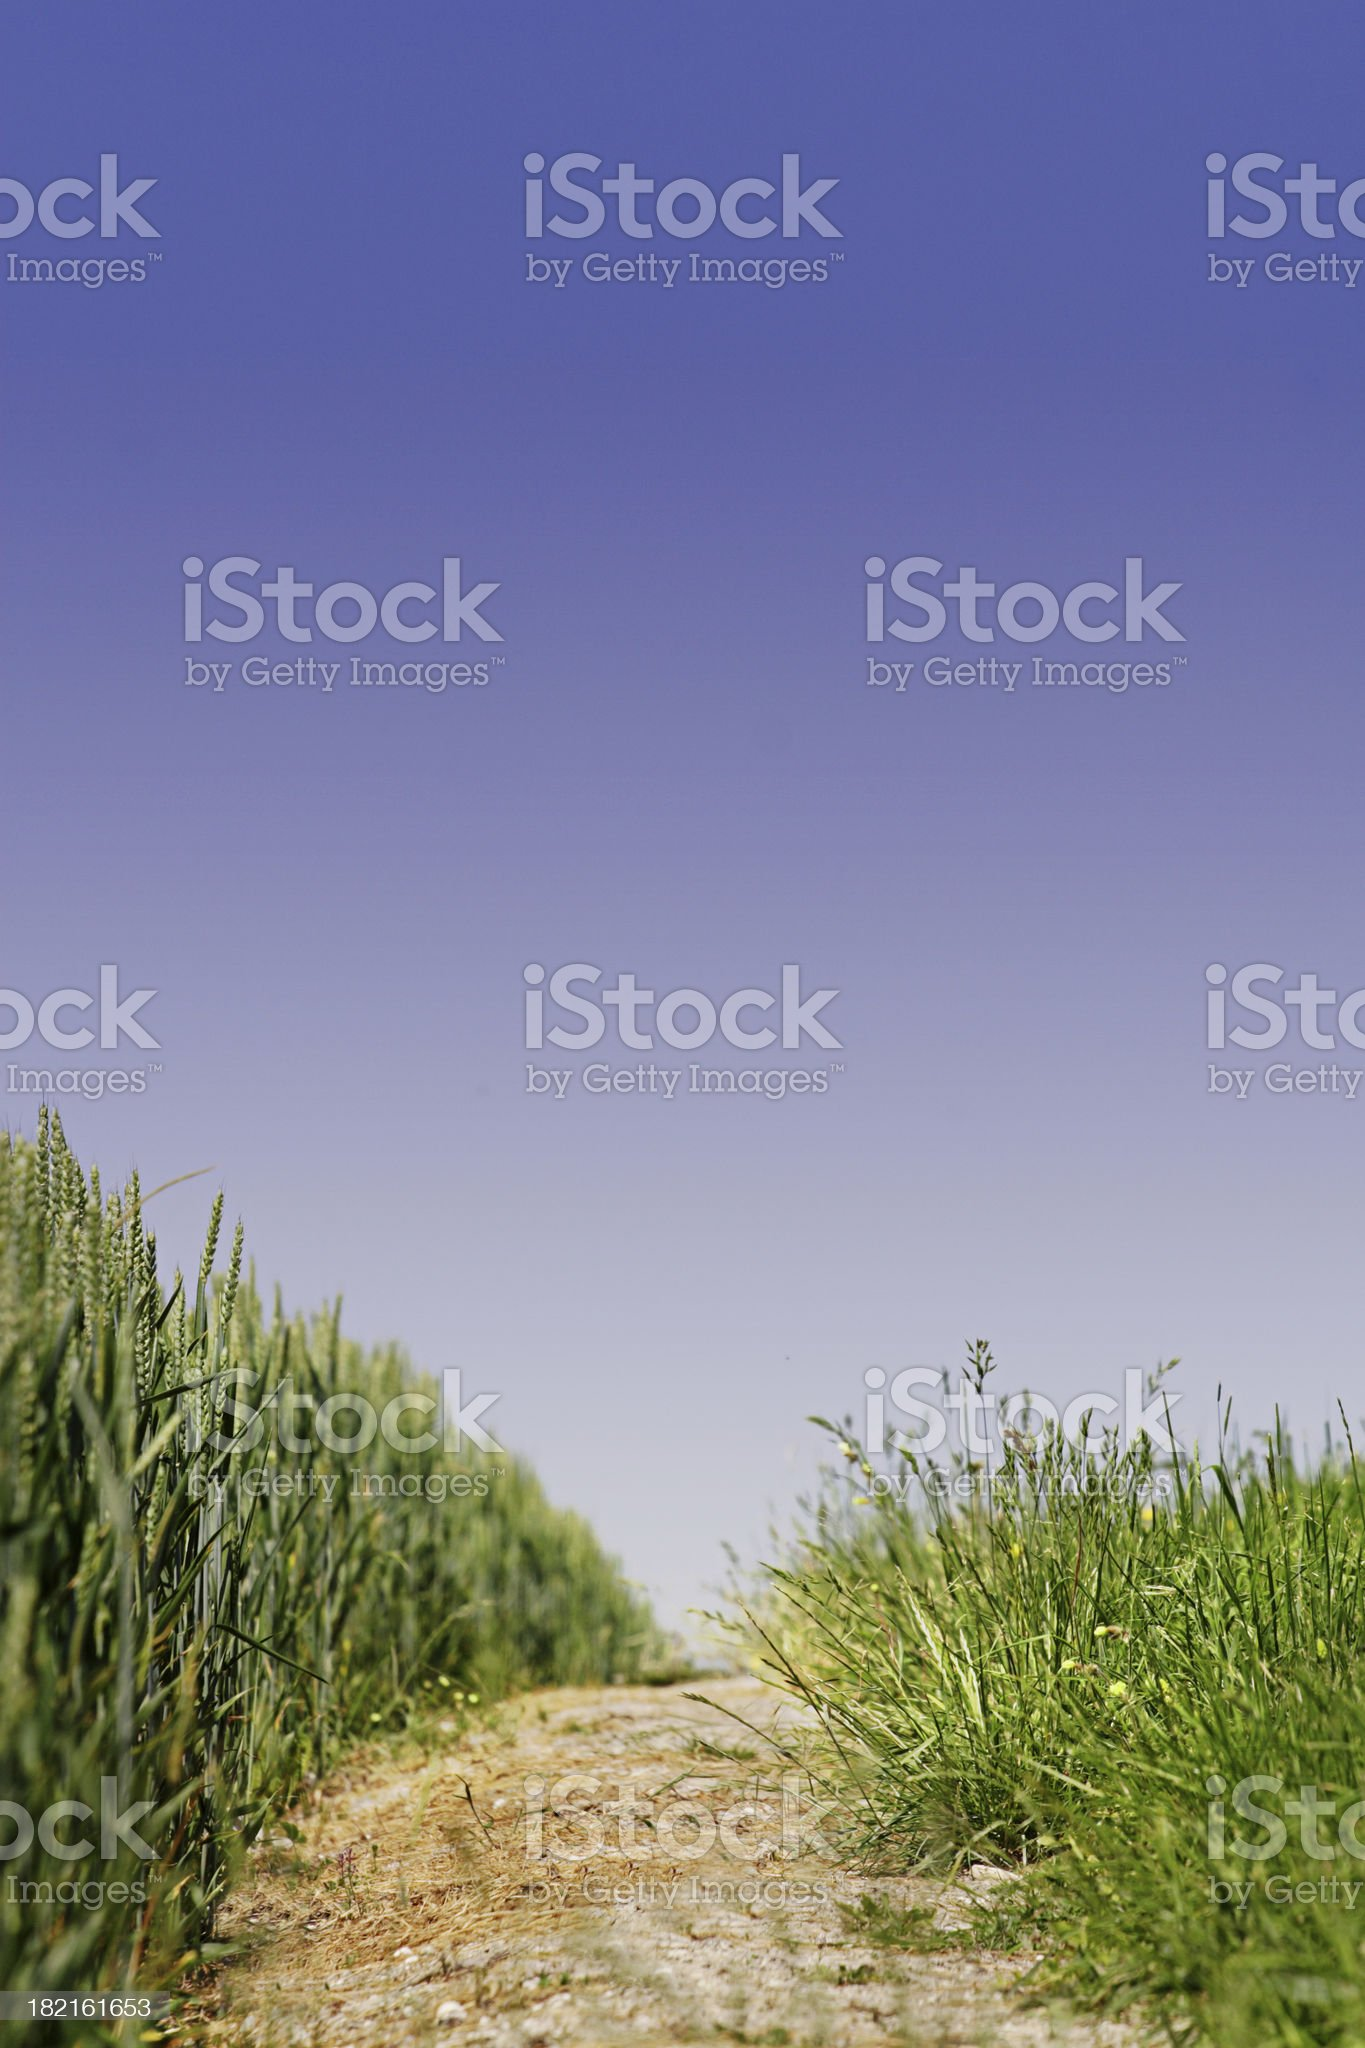 Dirt path between grassy field royalty-free stock photo